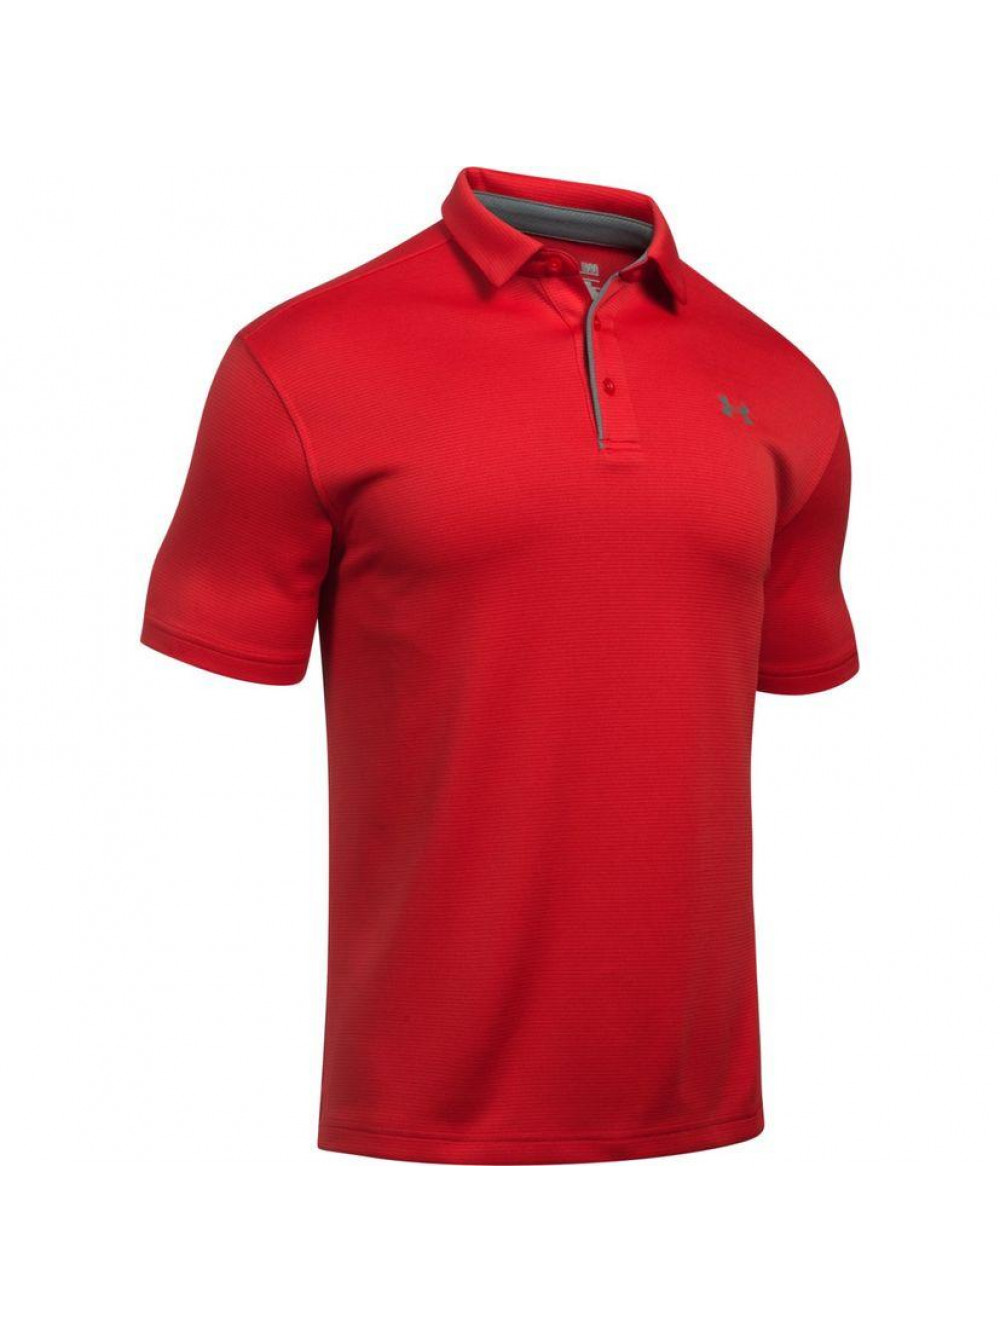 Tričko Under Armour Tech Polo červené